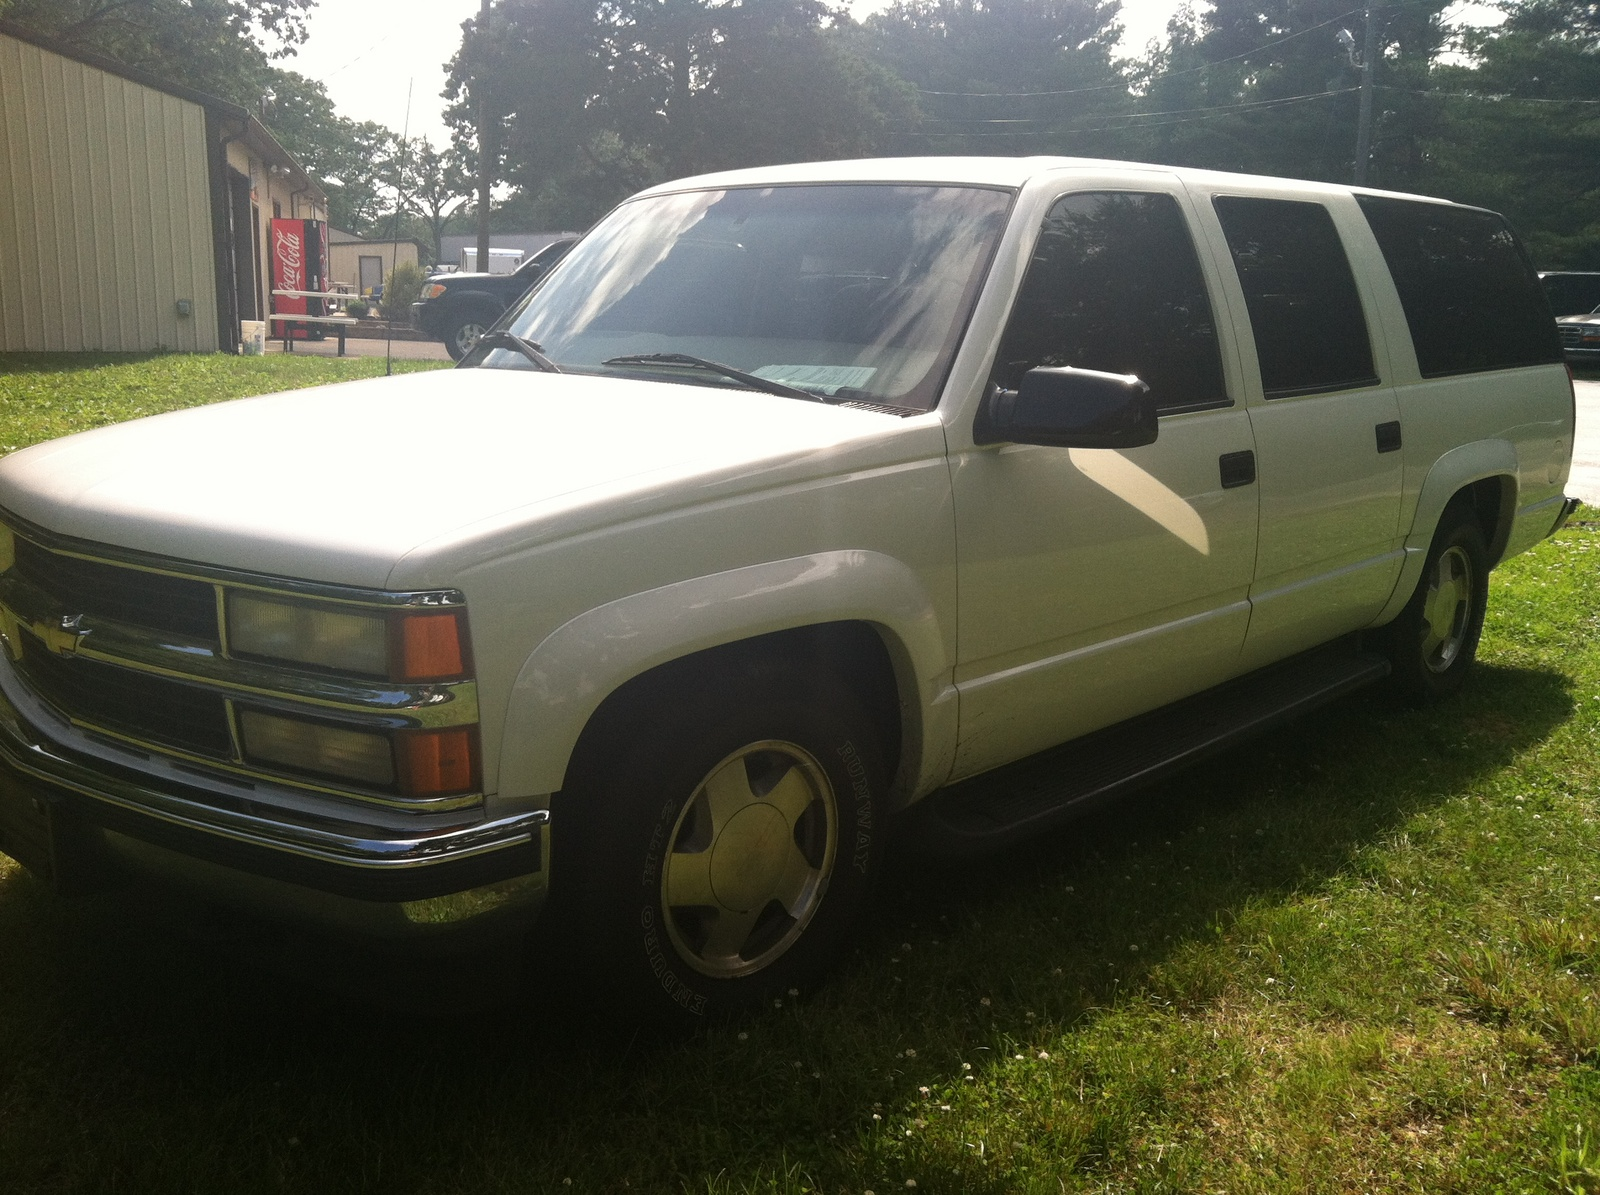 All Chevy 1999 chevrolet c2500 : Inspirational 1999 Chevrolet C2500 | newsotomotif